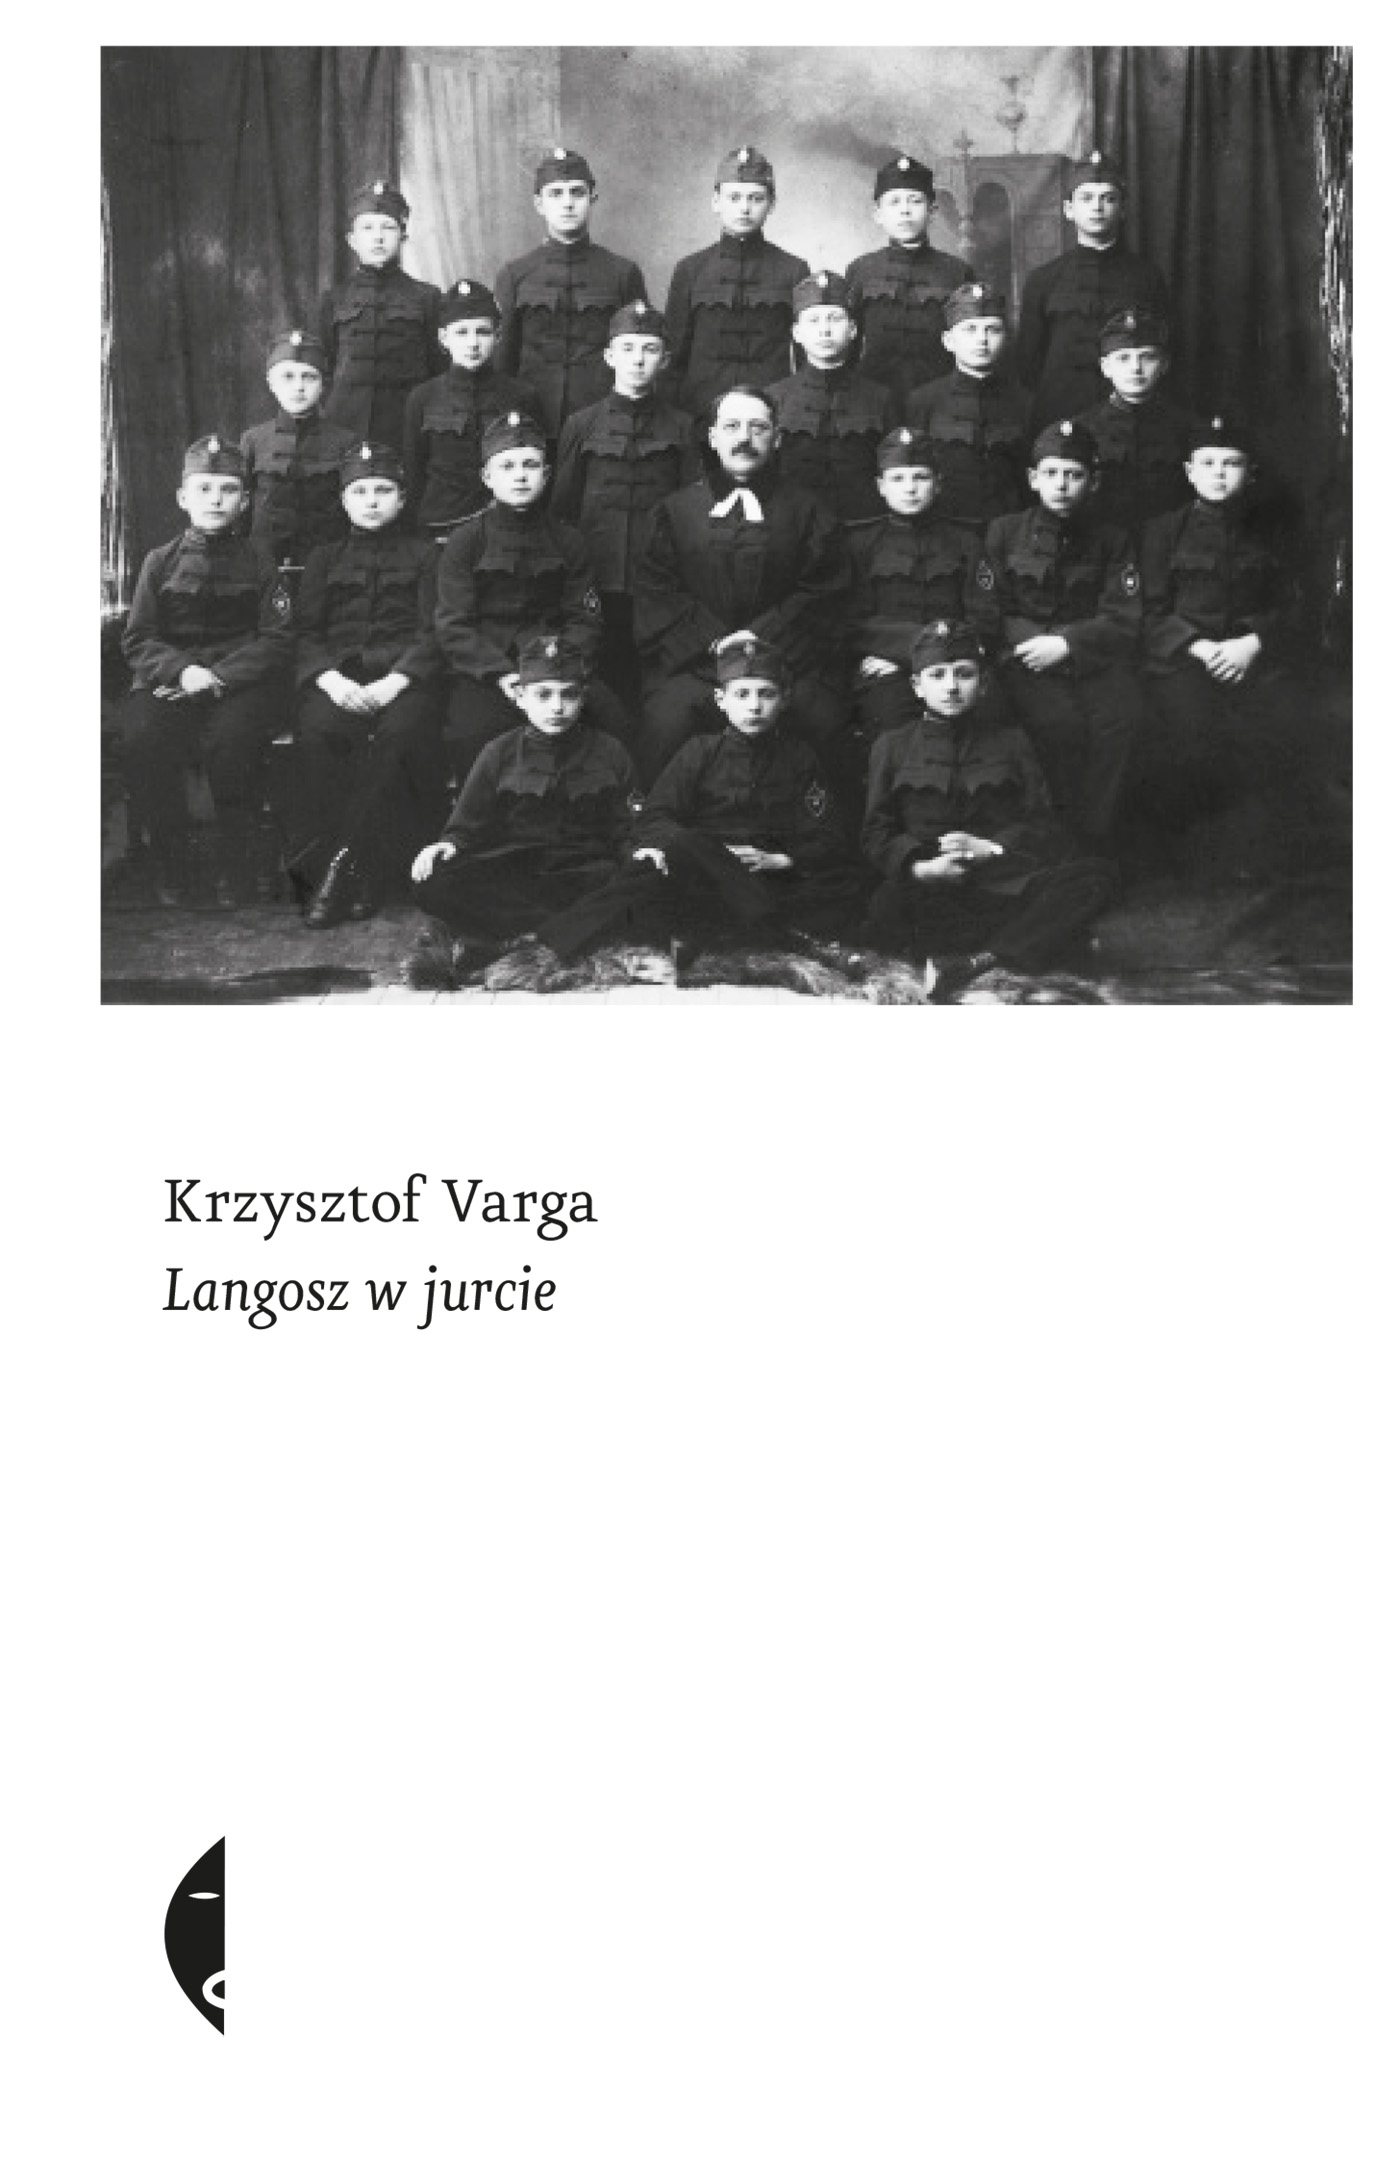 https://czarne.com.pl/uploads/catalog/product/cover/972/langosz.jpg